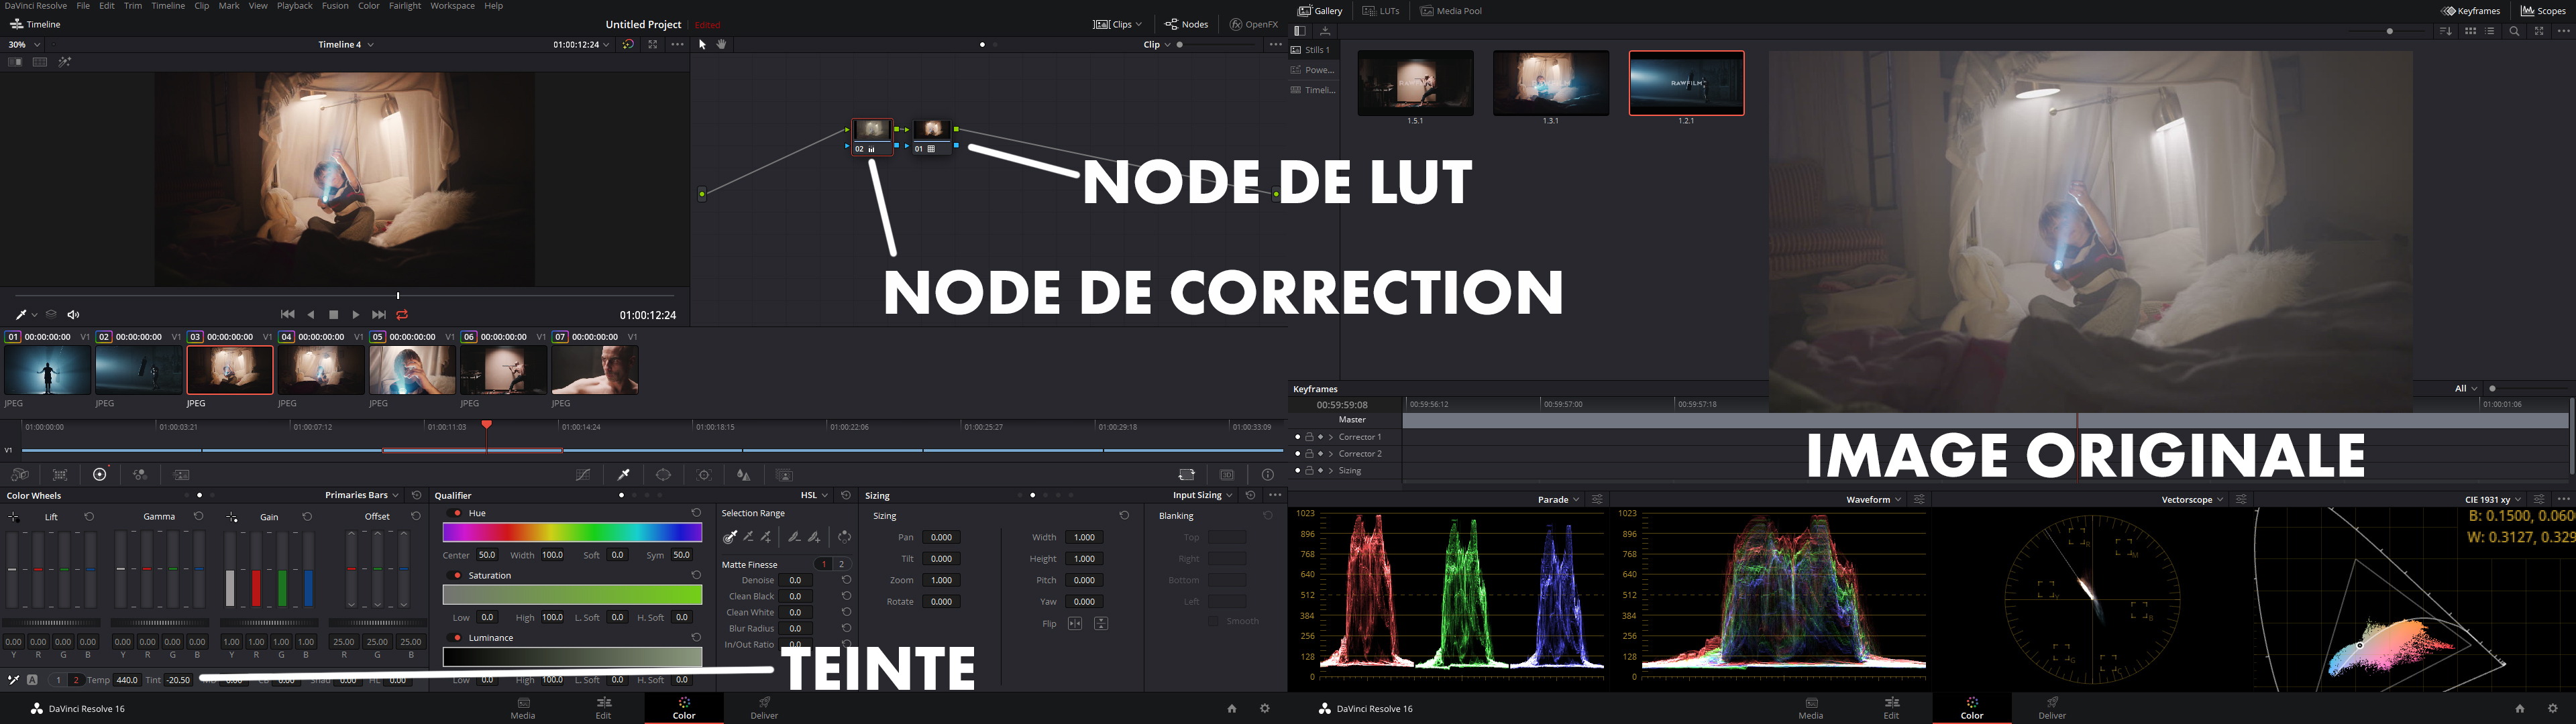 LUT Stranger Things - DaVinci Resolve Interface